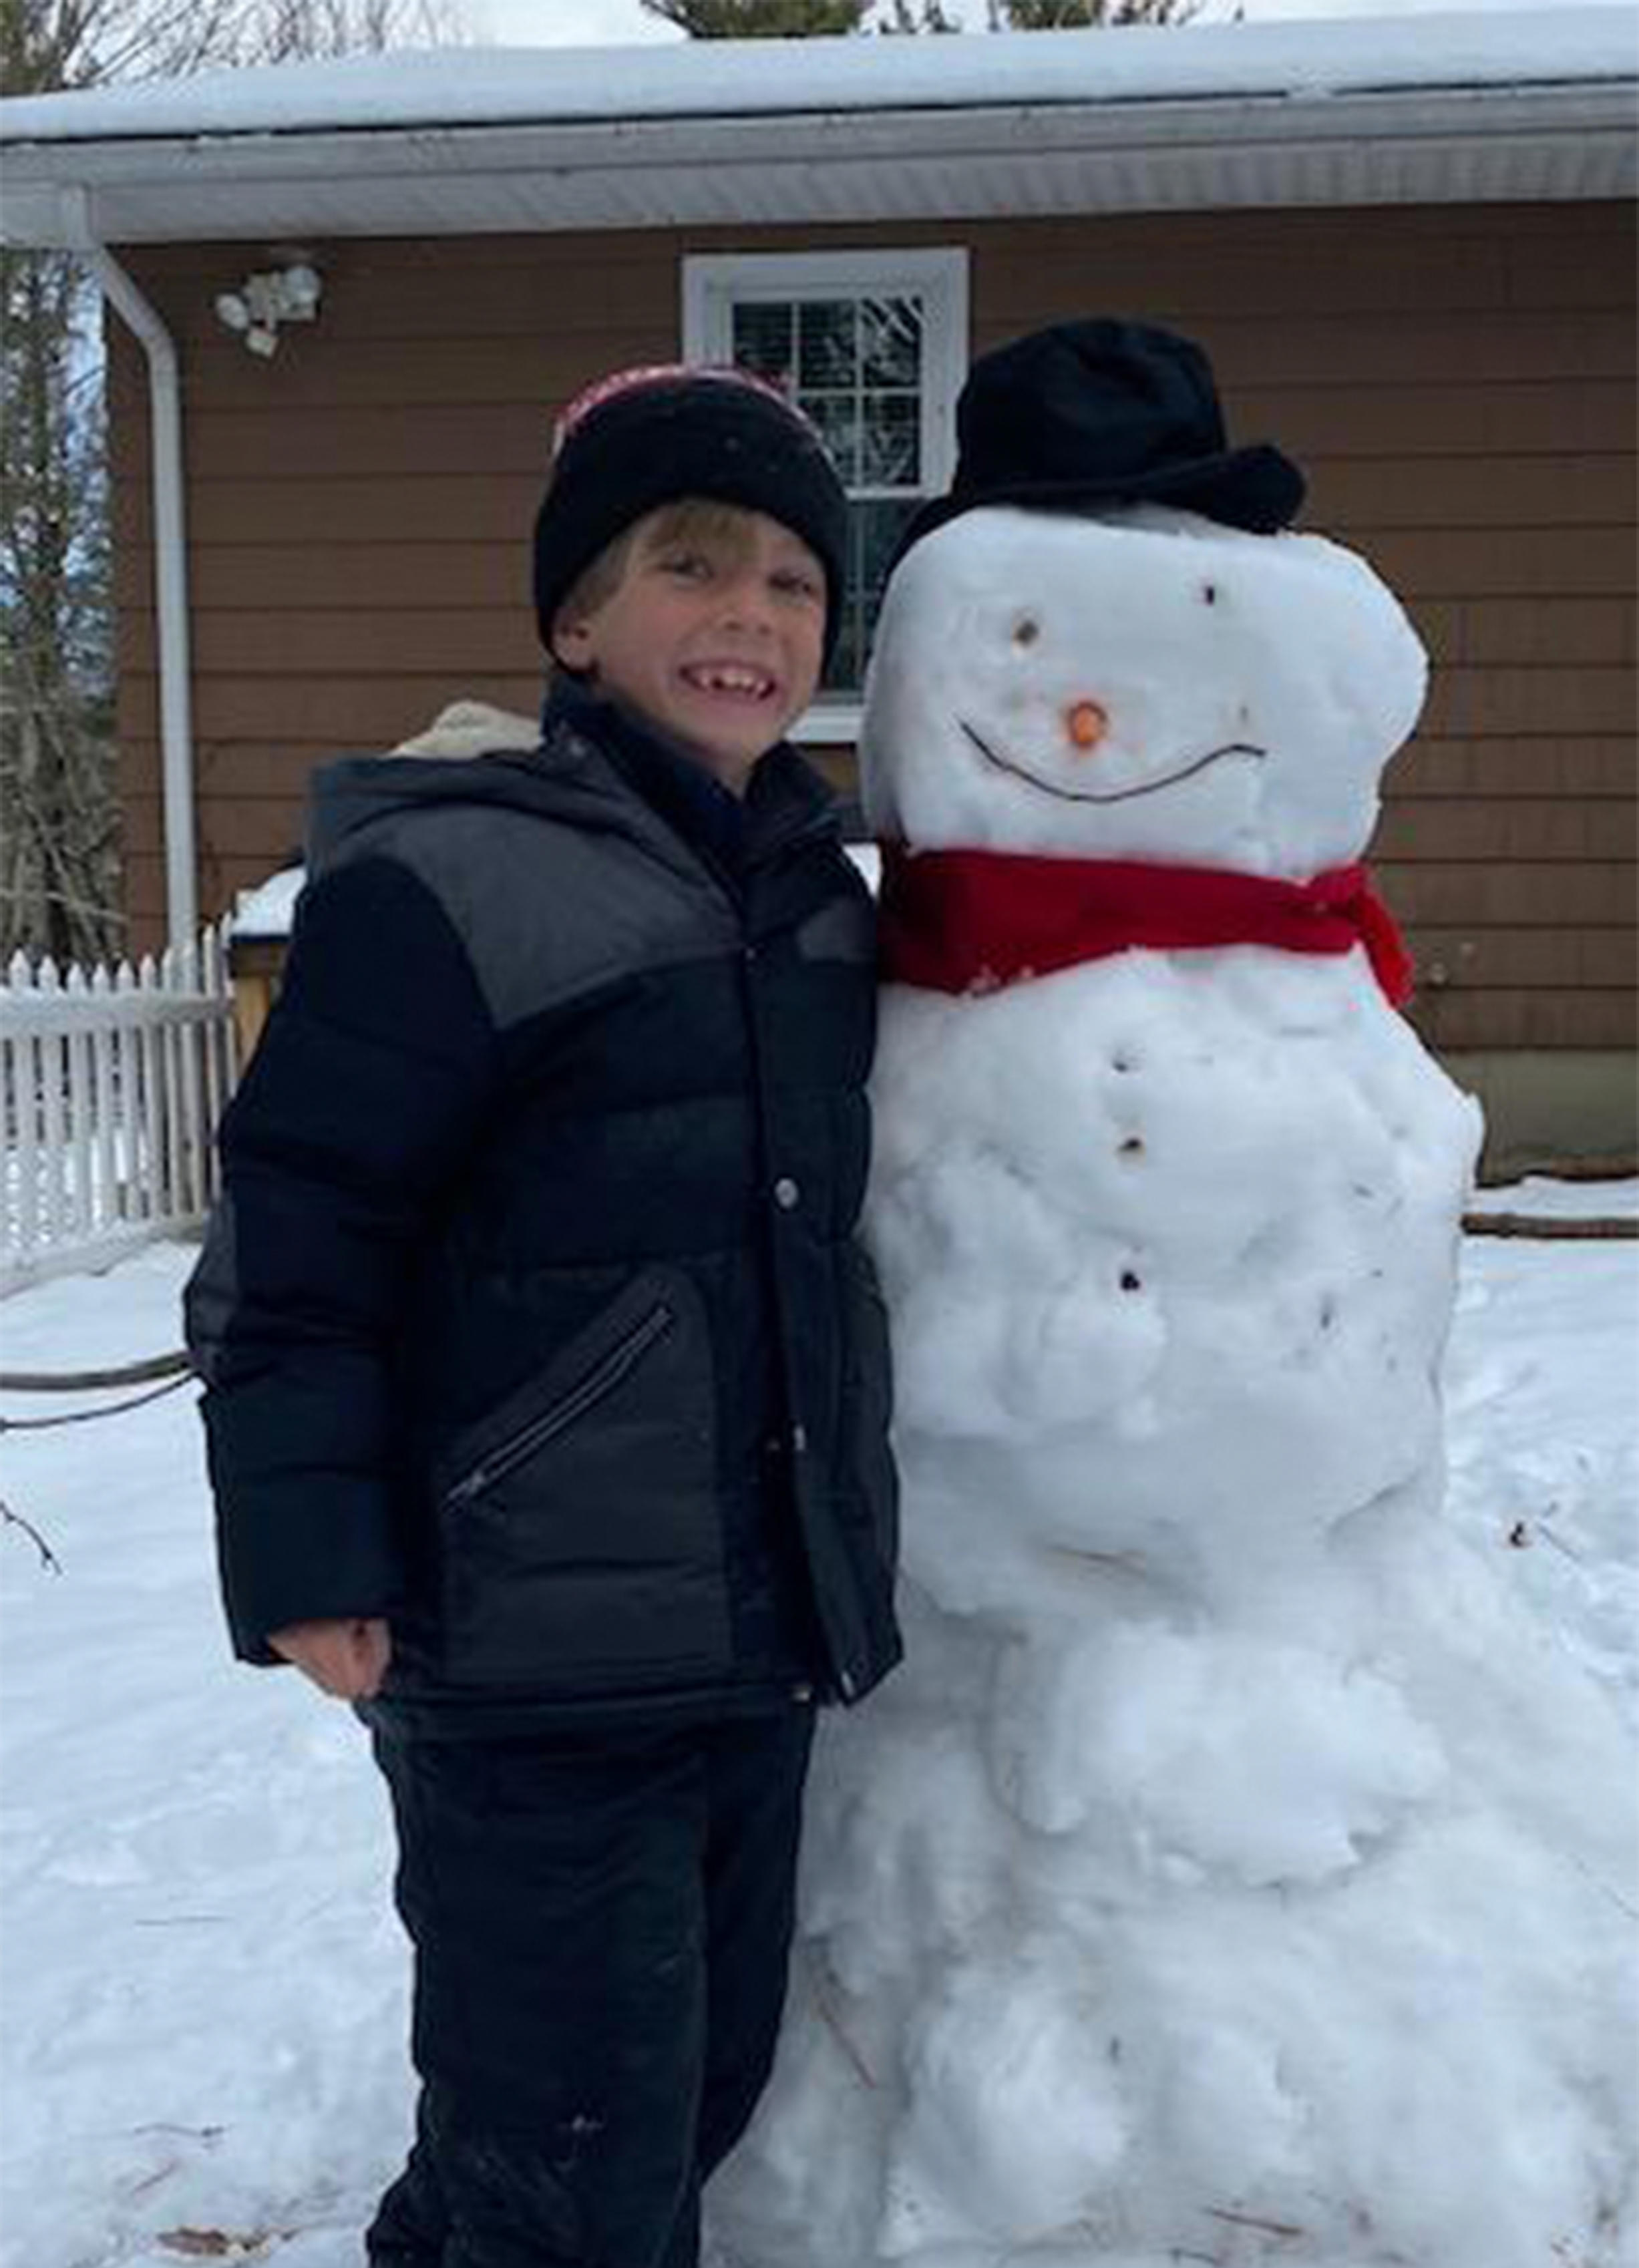 kid with snowman